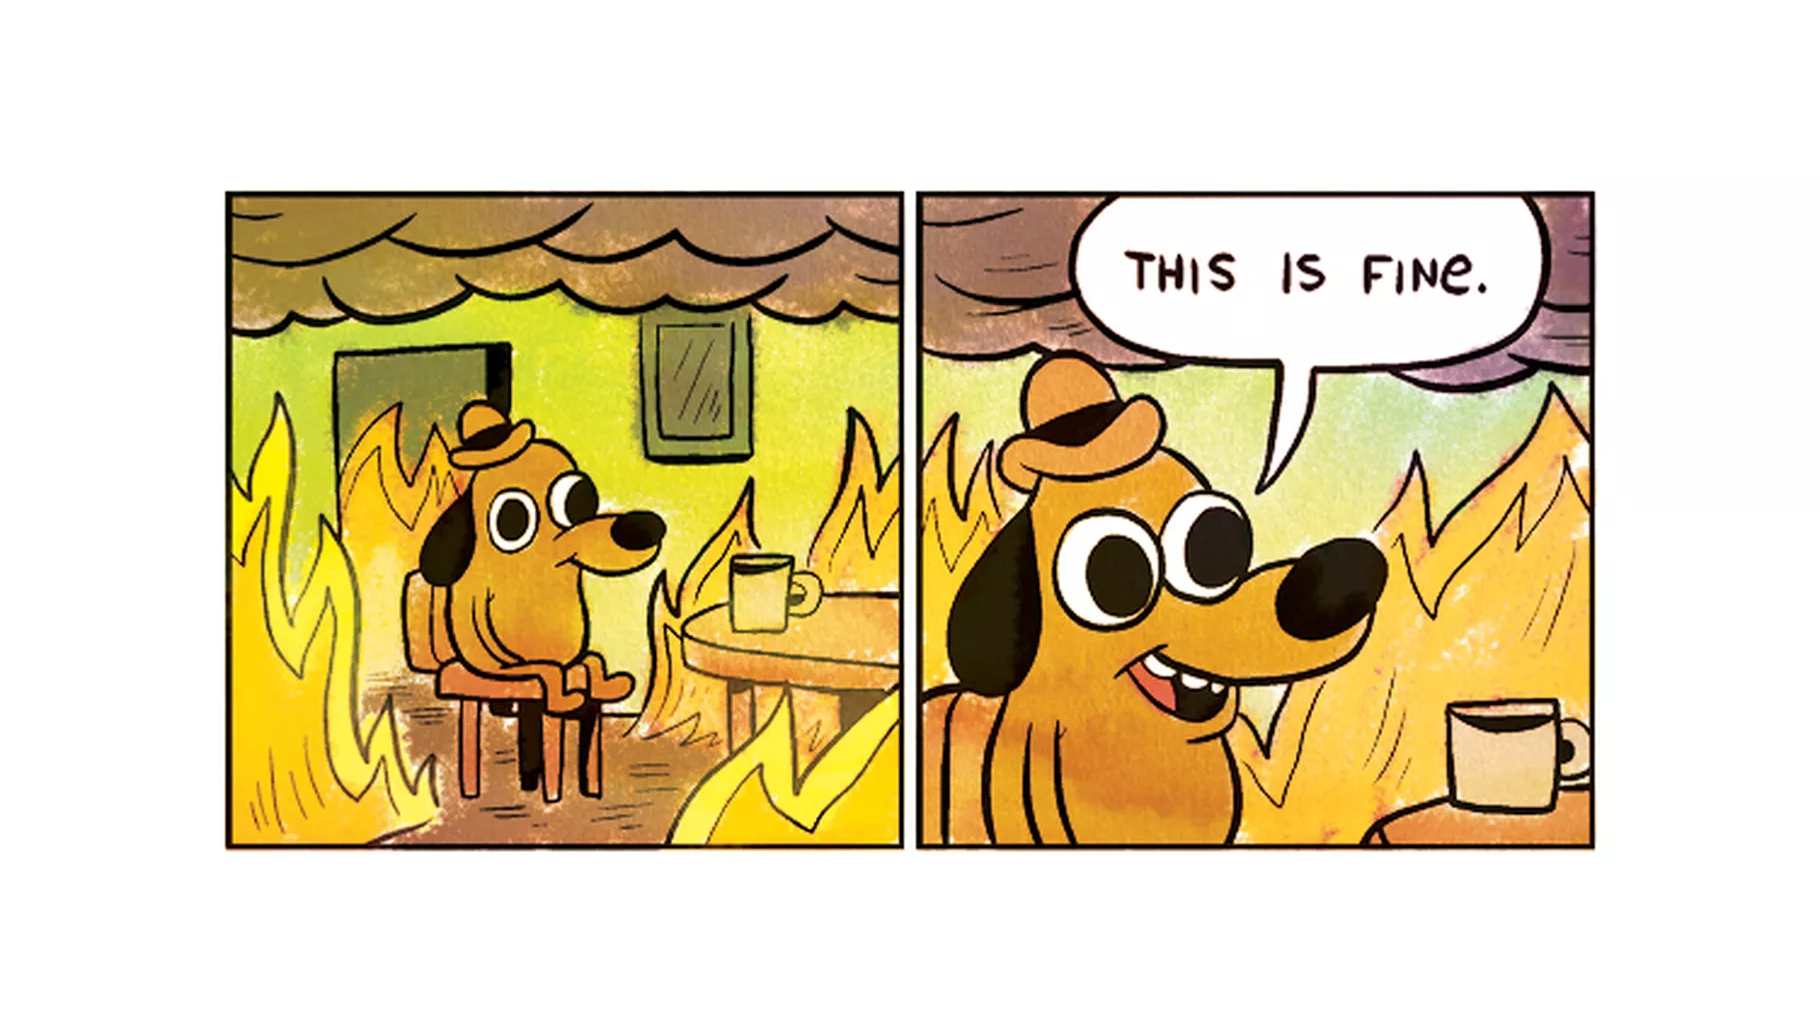 """(Meme: cartoon of dog drinking coffee at a table while a fire rages around him. In the second panel, a close up of the dog and the words """"this is fine"""" in his speech bubble)."""